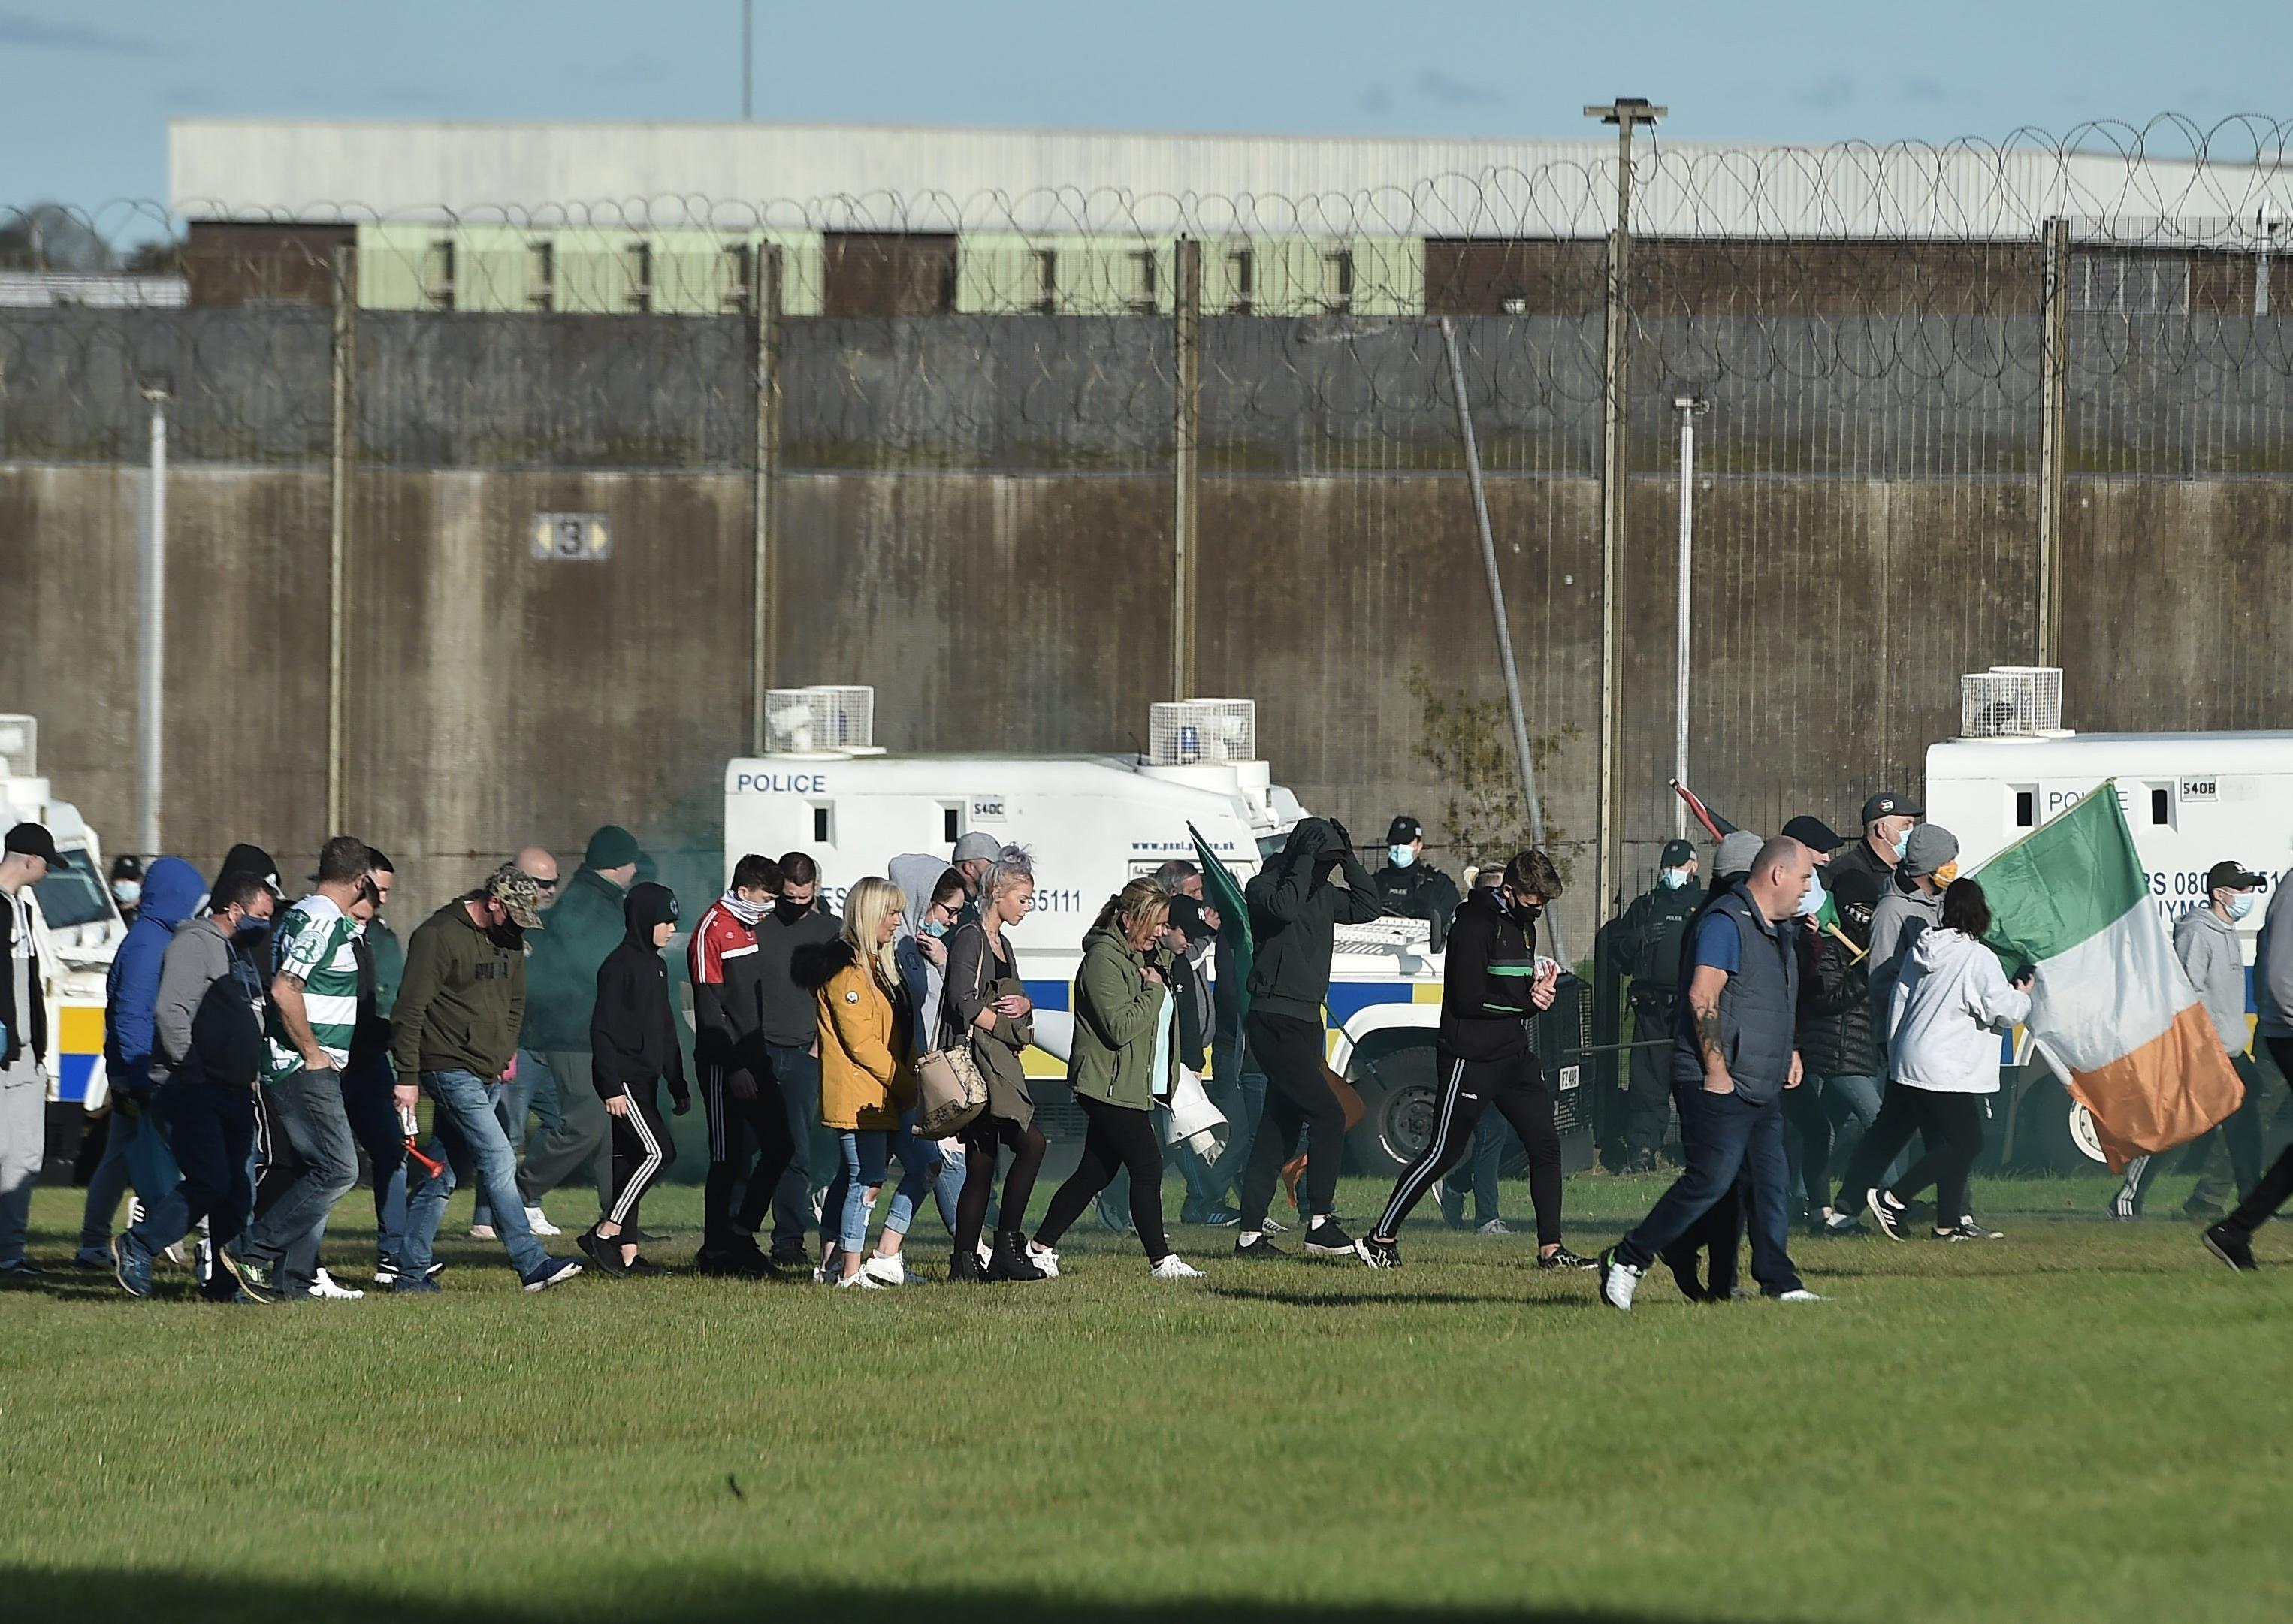 Police officer injured during dissident protest at Maghaberry Prison